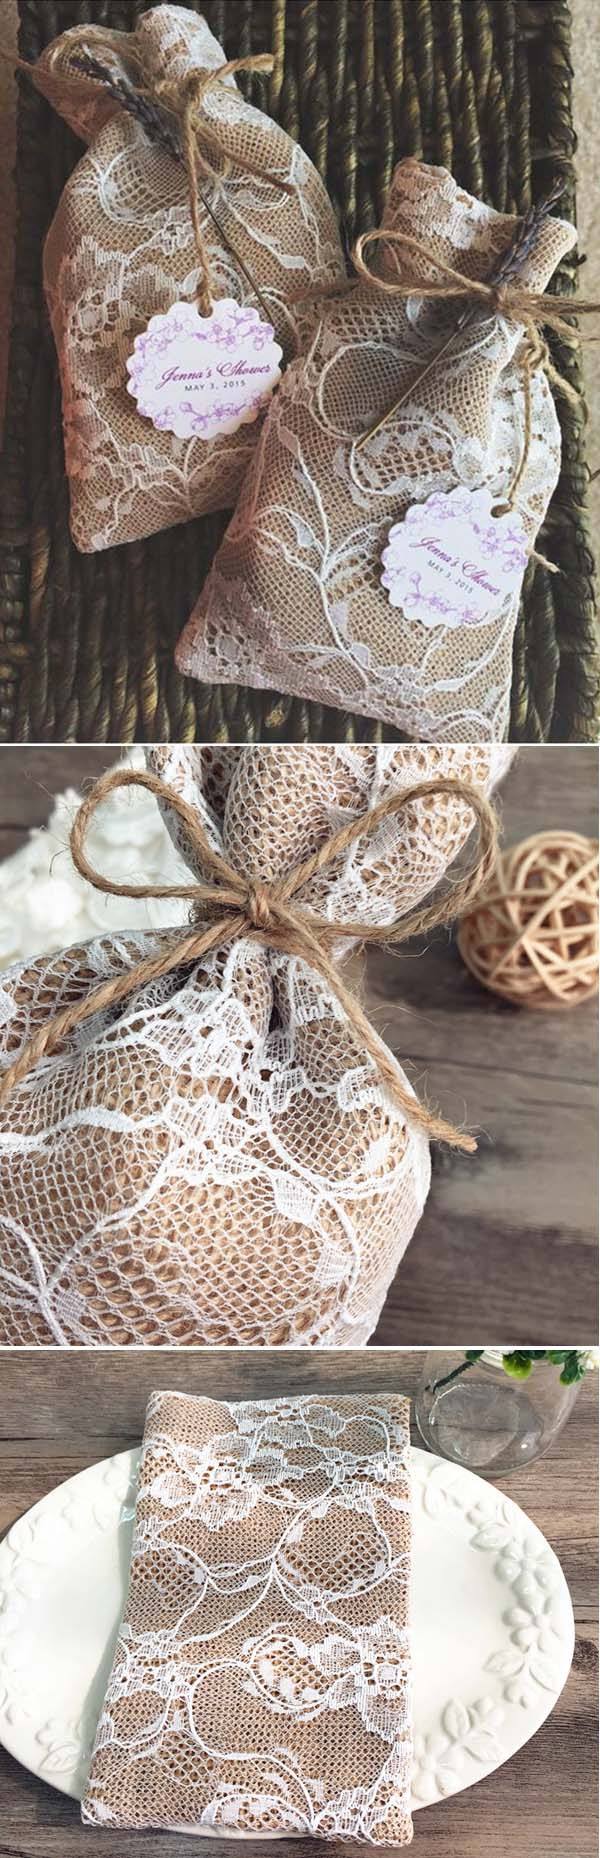 vintage lace and burlap wedding favor bags